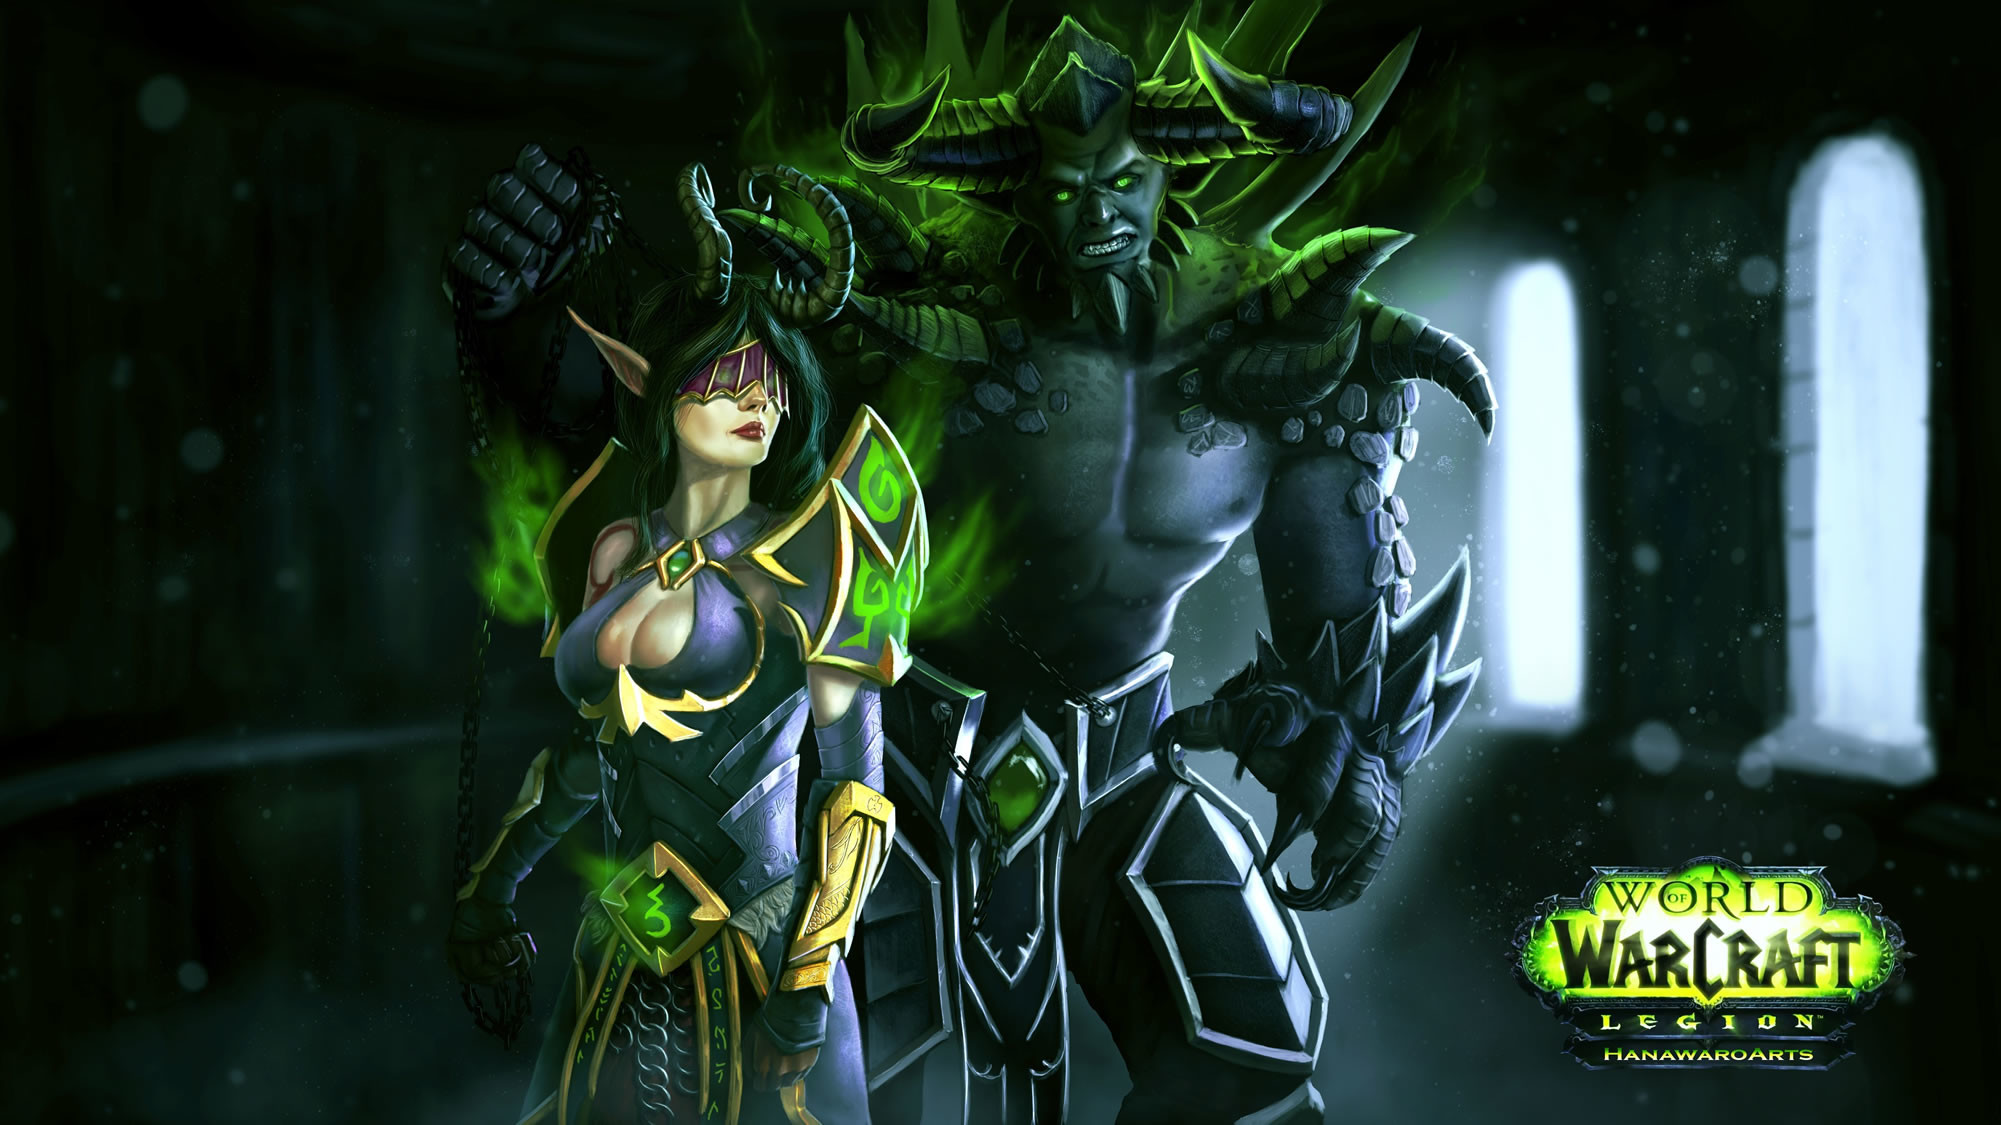 Full HD p World of warcraft Wallpapers HD, Desktop Backgrounds World of  Warcraft Legion Wallpapers Wallpapers)